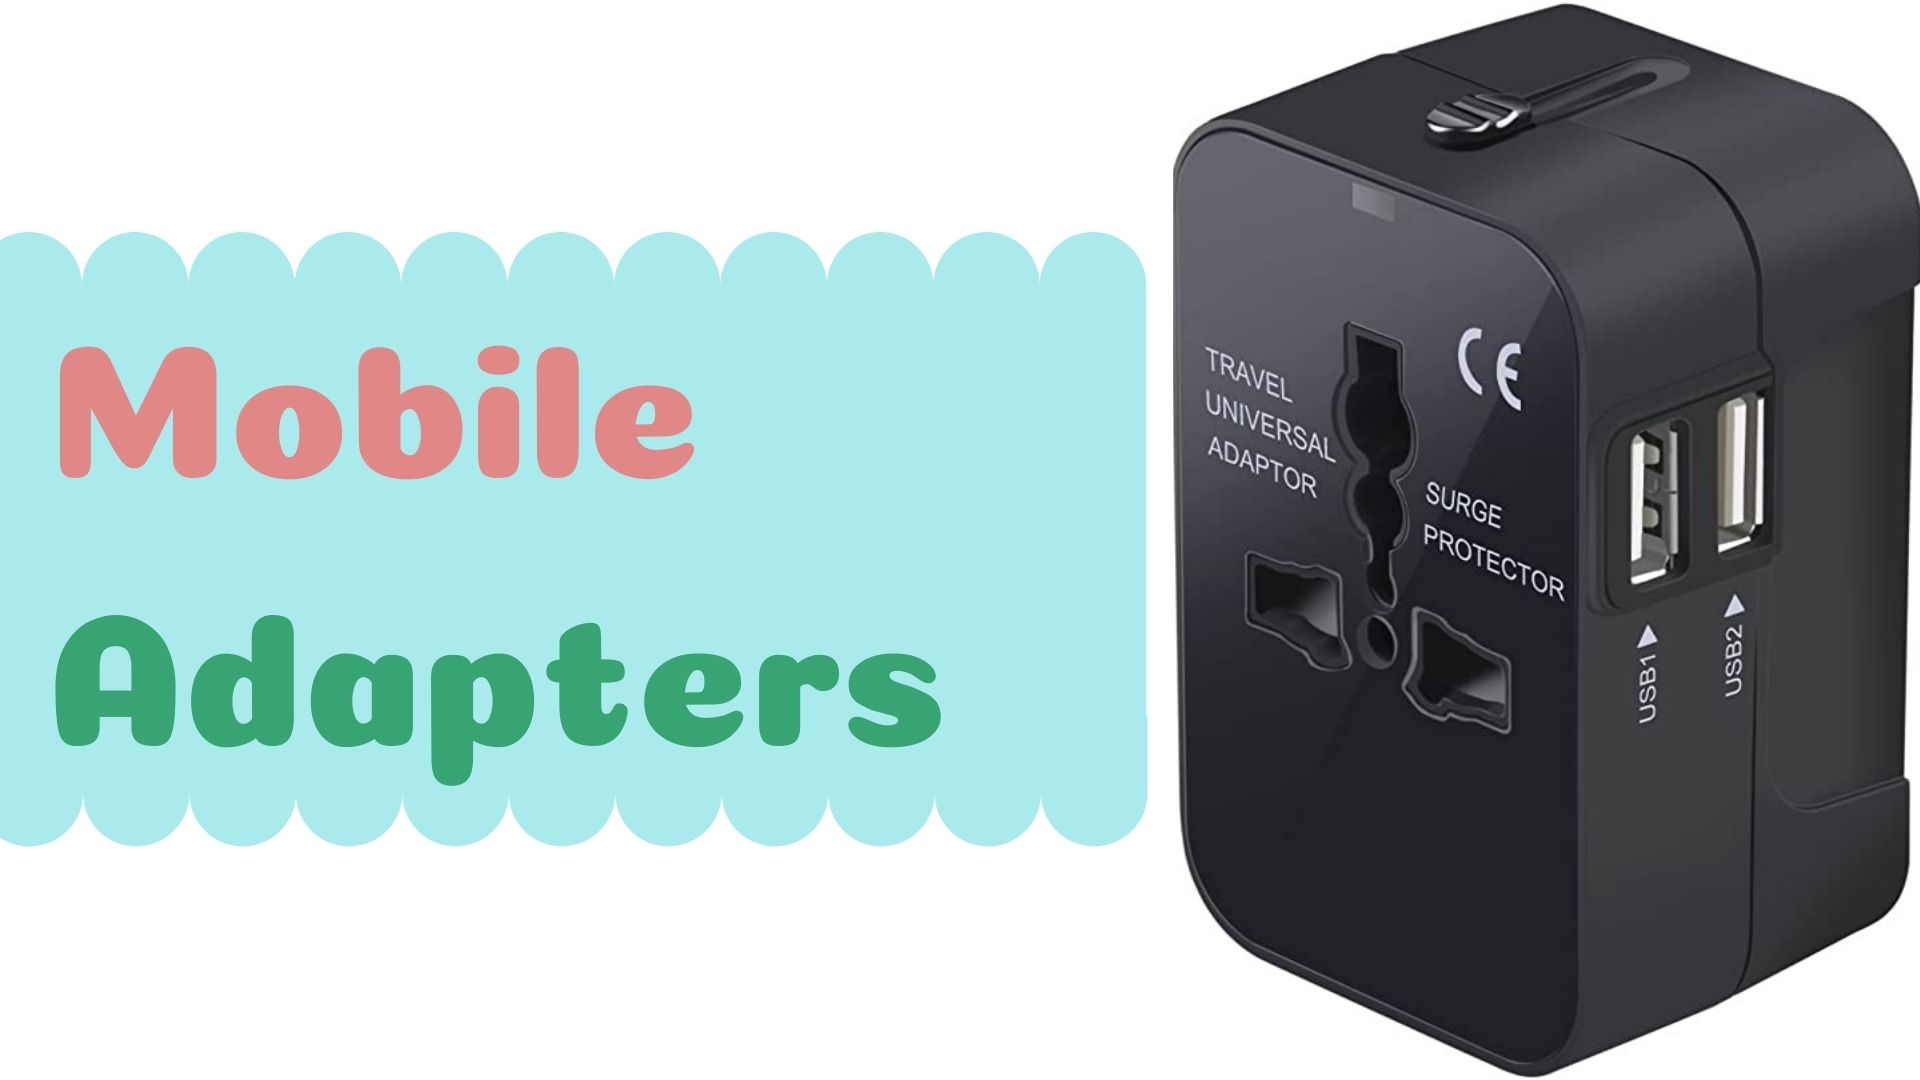 Mobile Adapters